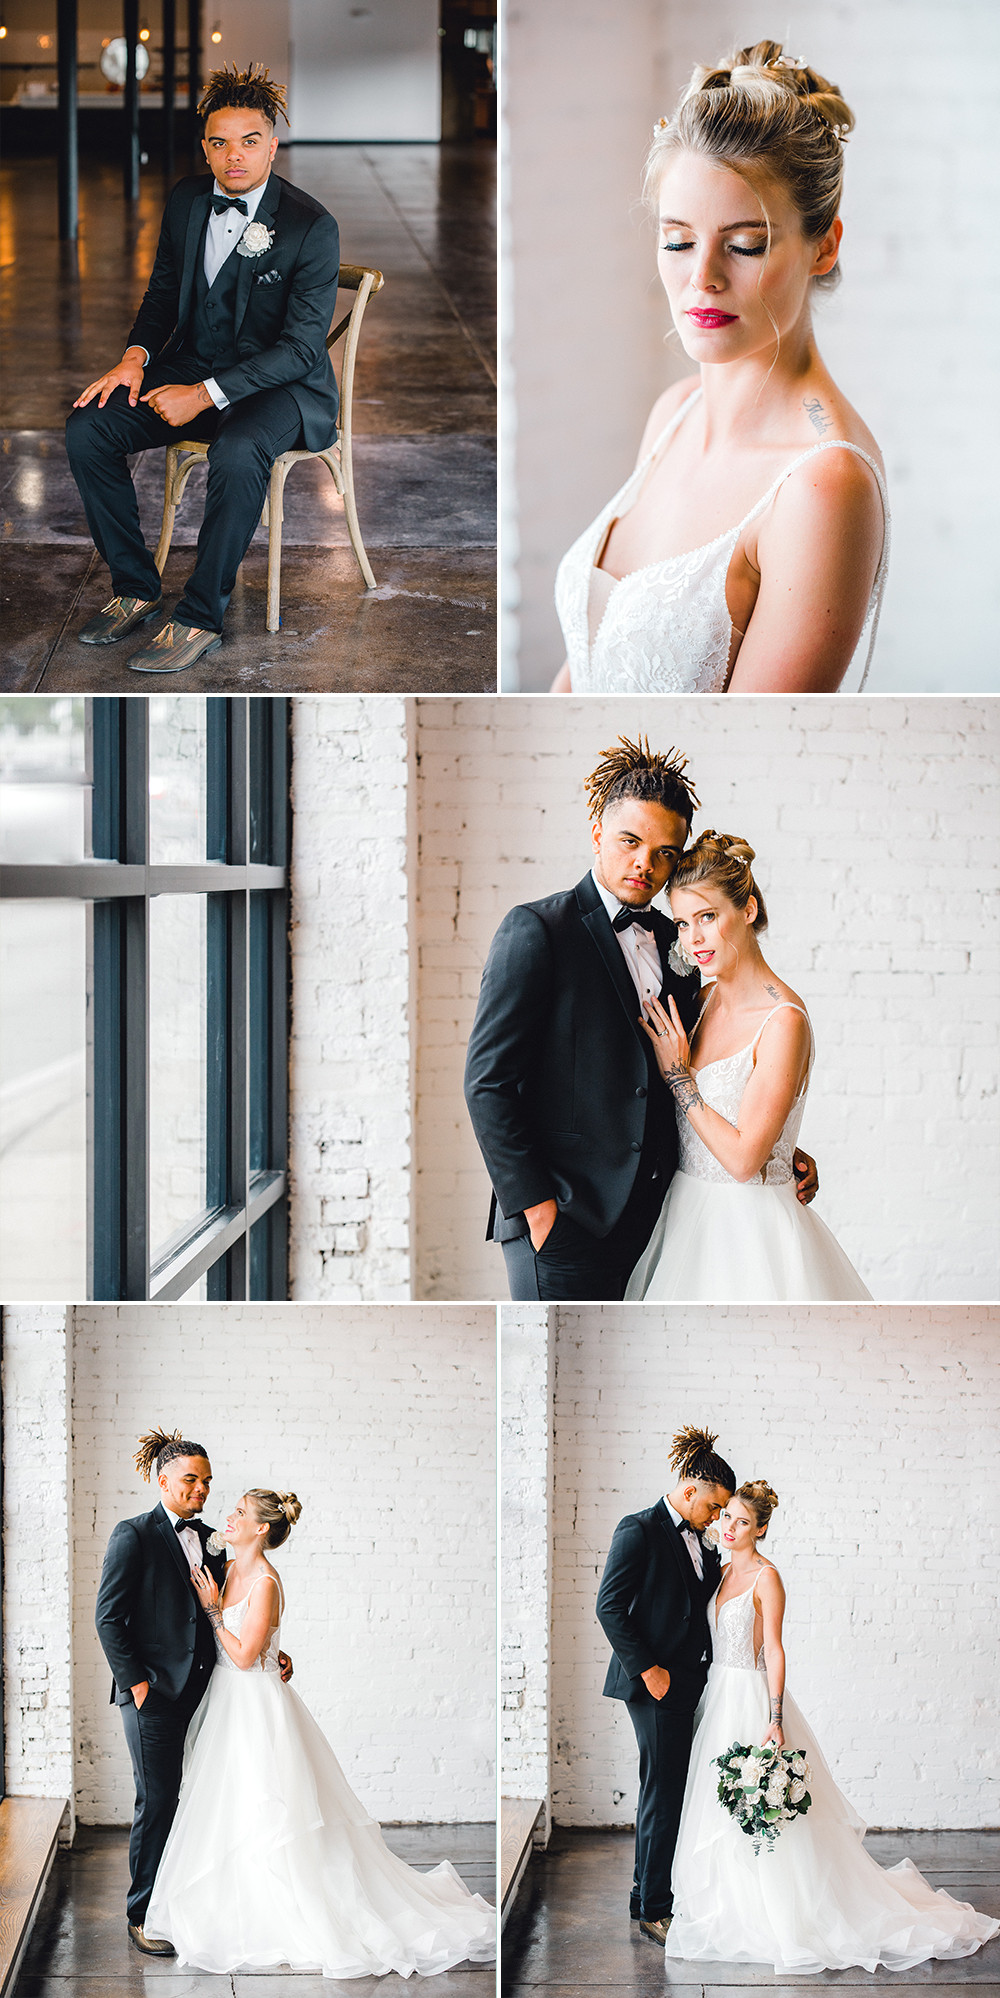 Fine art film photographer Nina Bashaw photographs a wedding at Haus 820